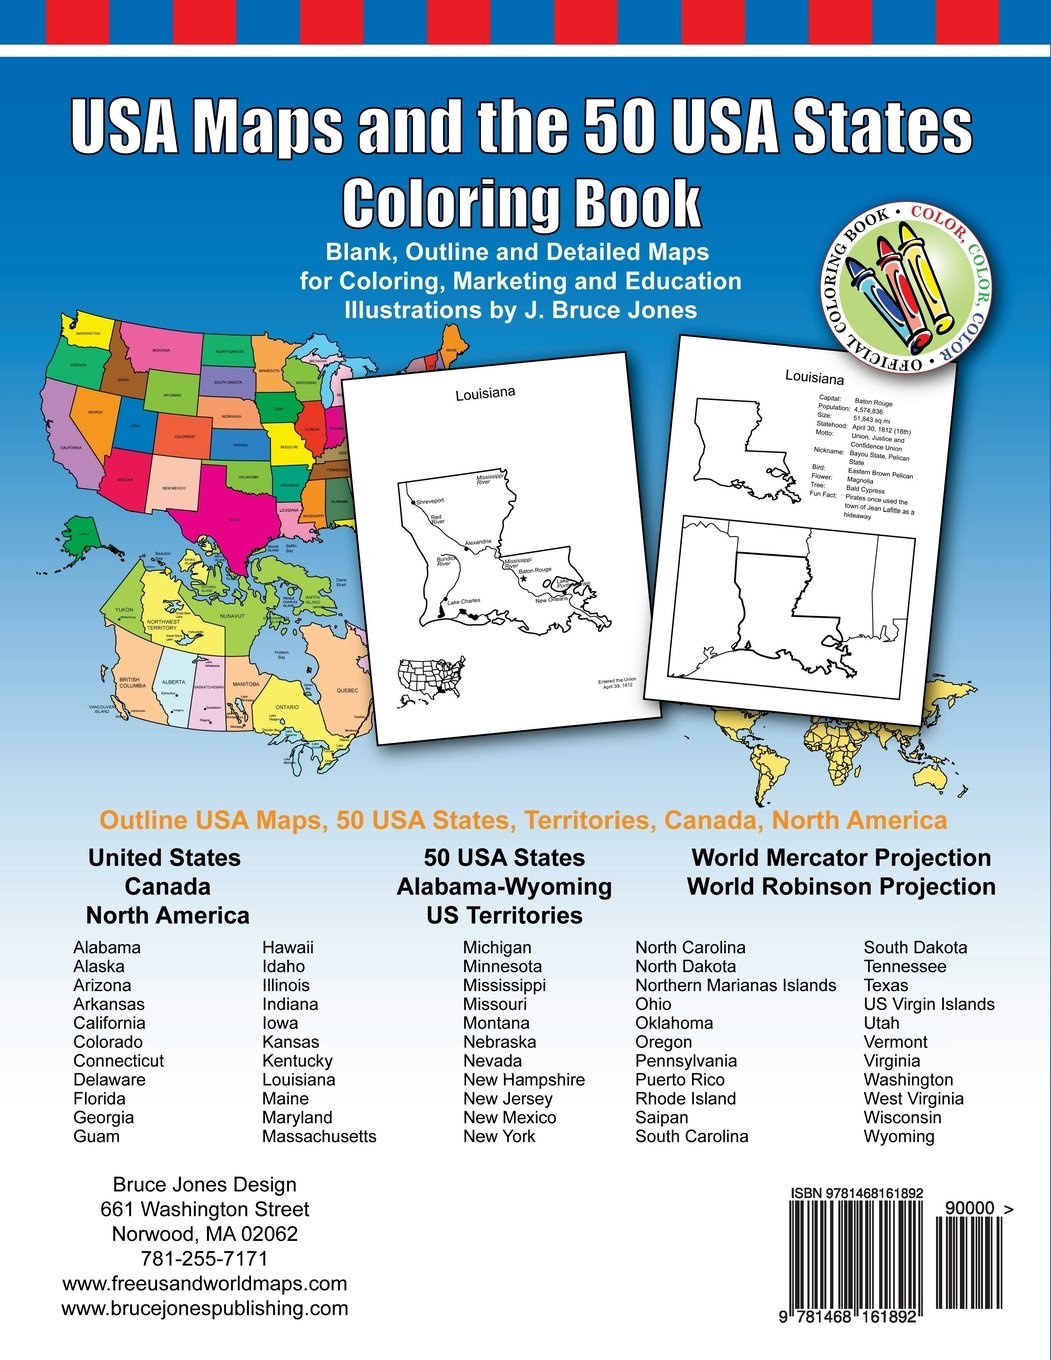 Amazoncom USA Maps And The USA States Coloring Book Includes - Us map with california michigna wiscoinin arizona and florida highlithed